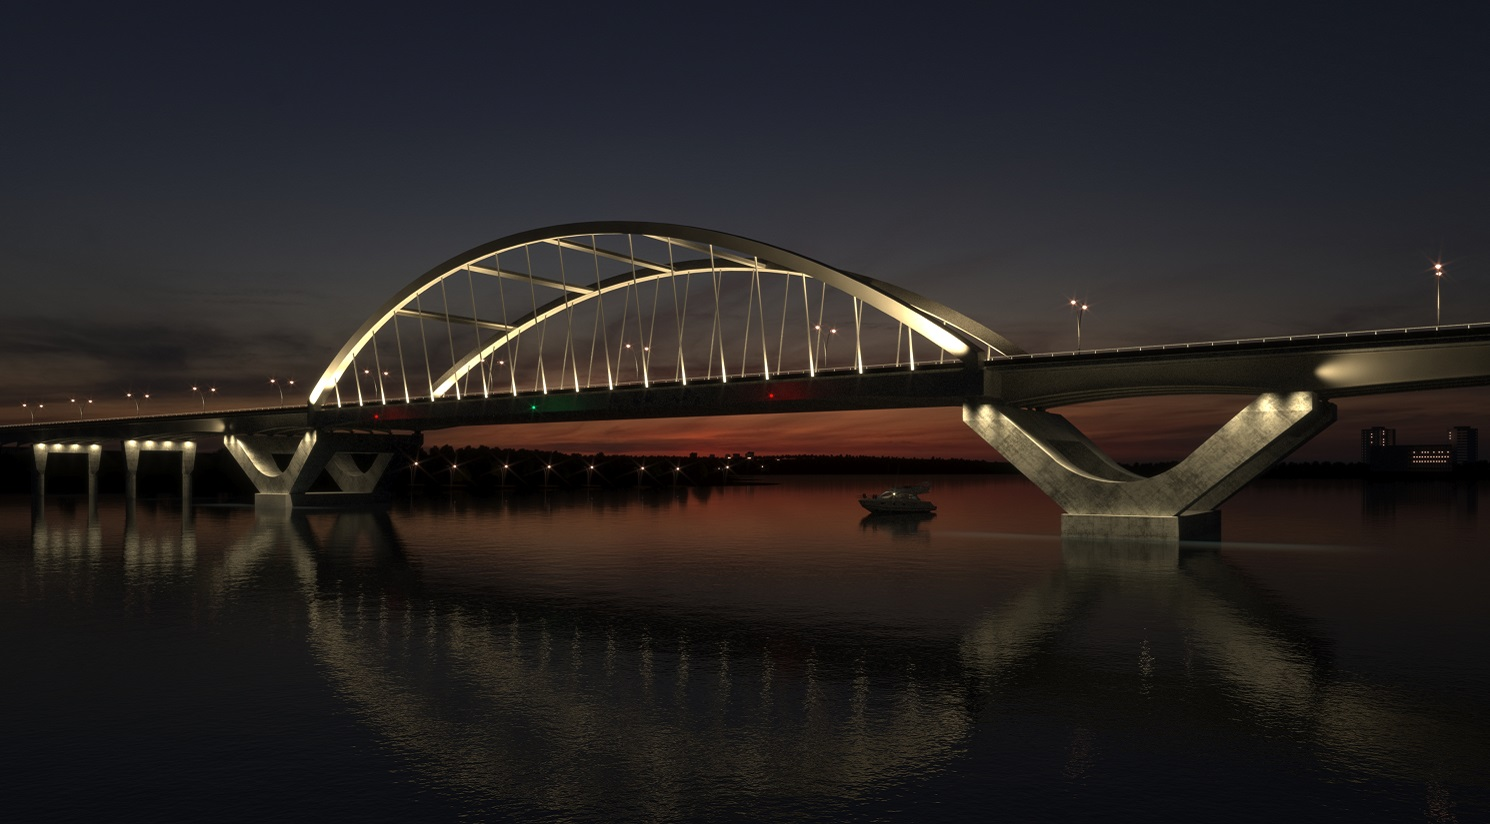 SYSTRA, Kiewit and Hatch to build Third Crossing bridge in Kingston, Ontario